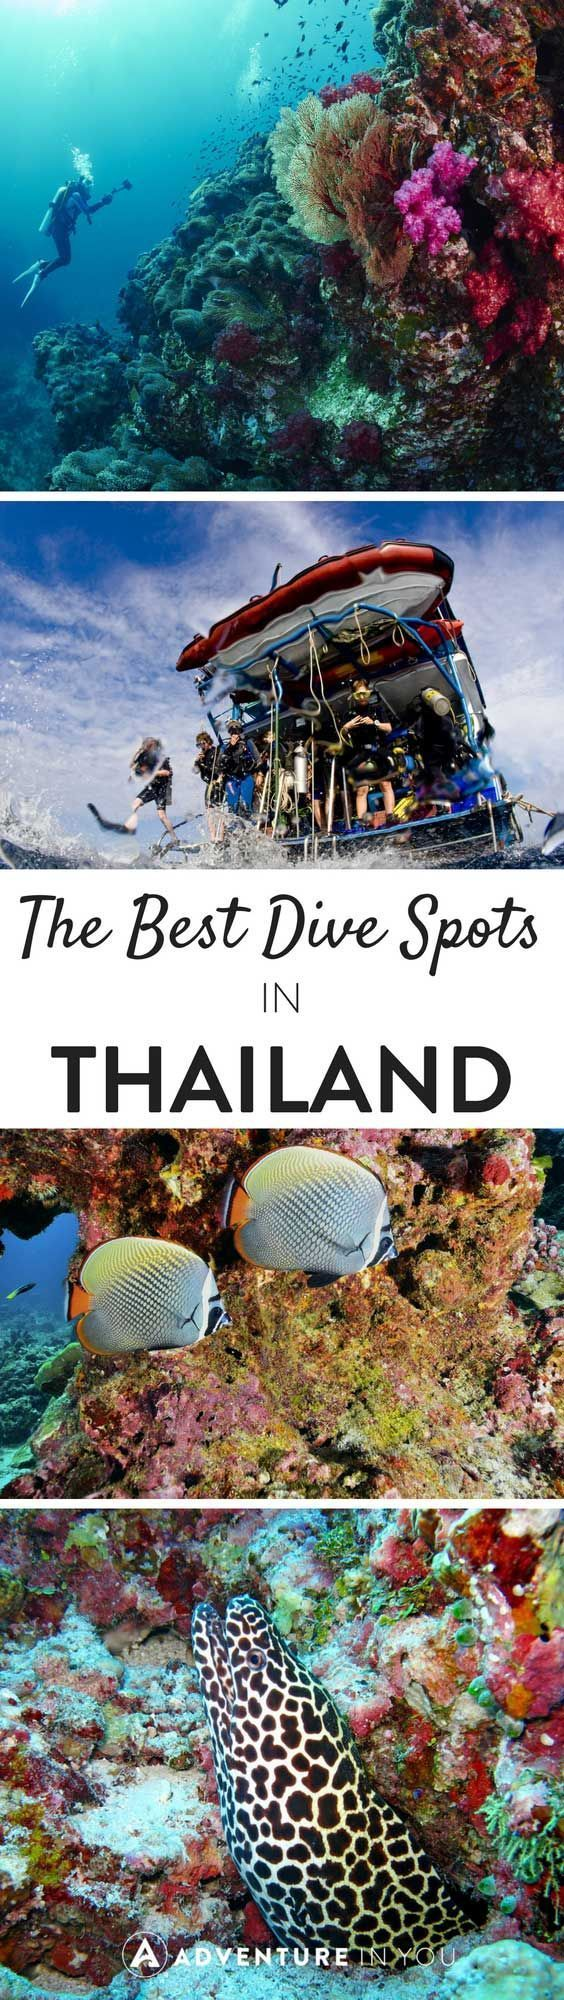 Planning to go diving in Thailand? Here are our recommendations for the MUST DIVE spots in the area.